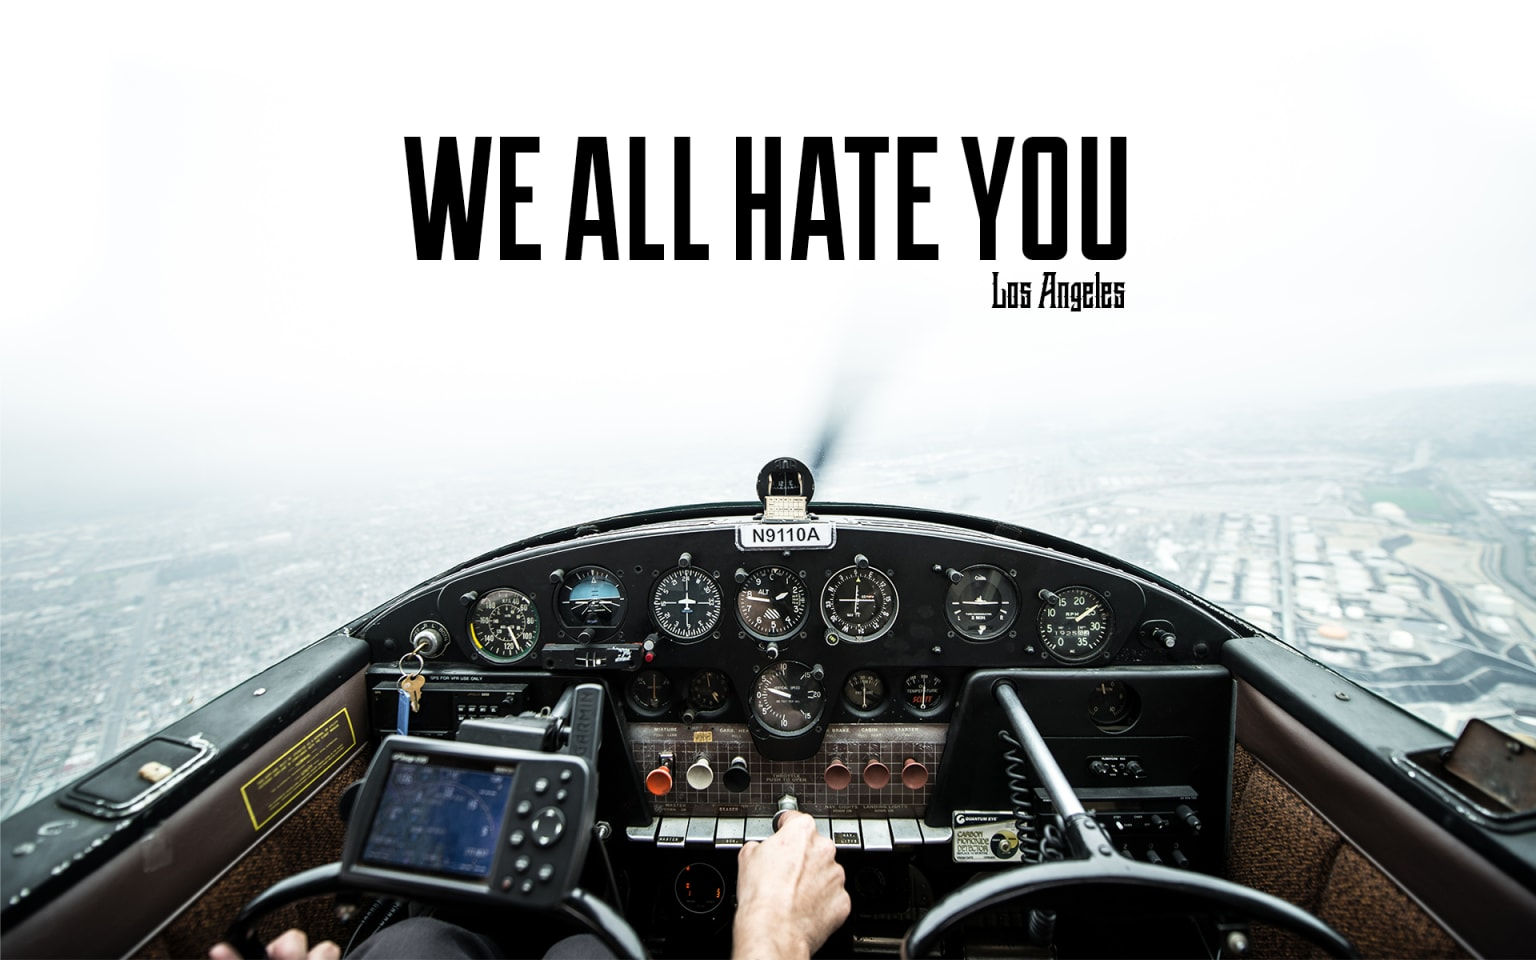 We All Hate You - Los Angeles